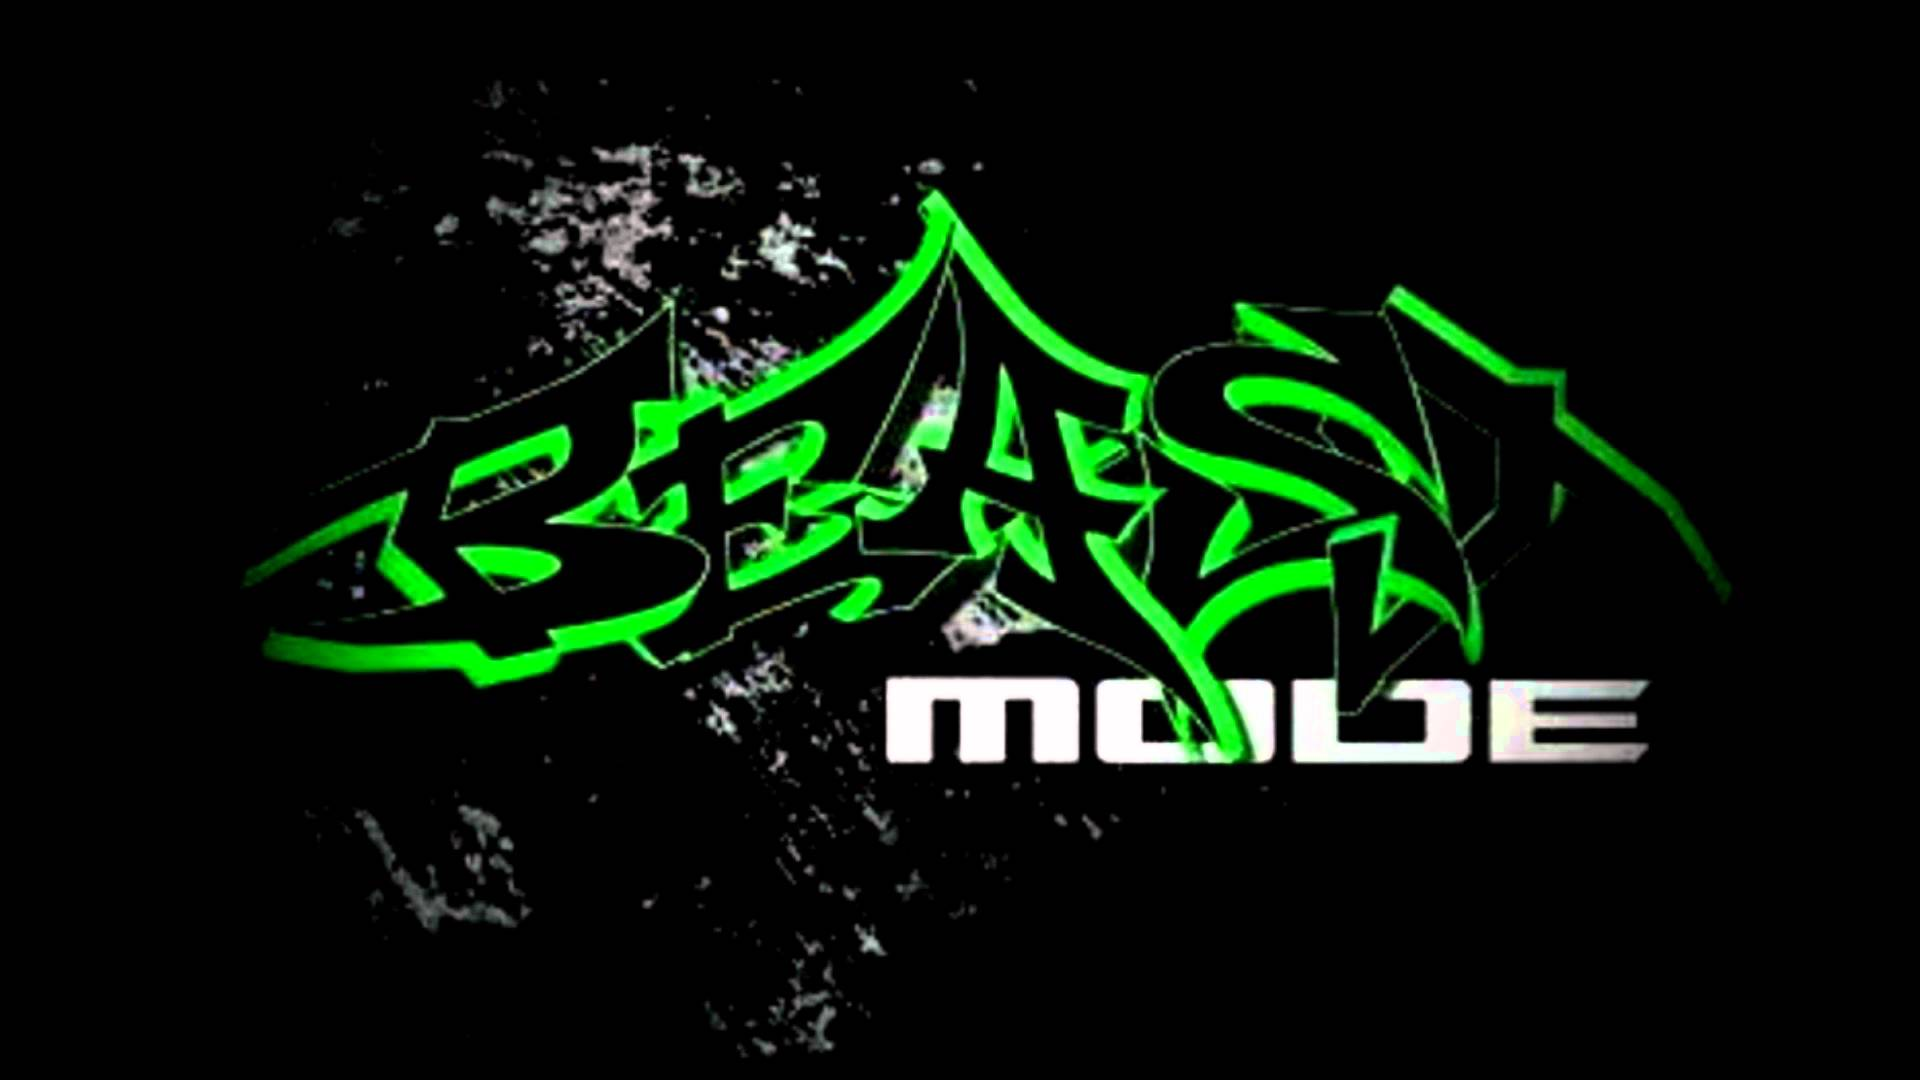 Best 58 Beast Mode Wallpaper on HipWallpaper Beauty and the 1920x1080